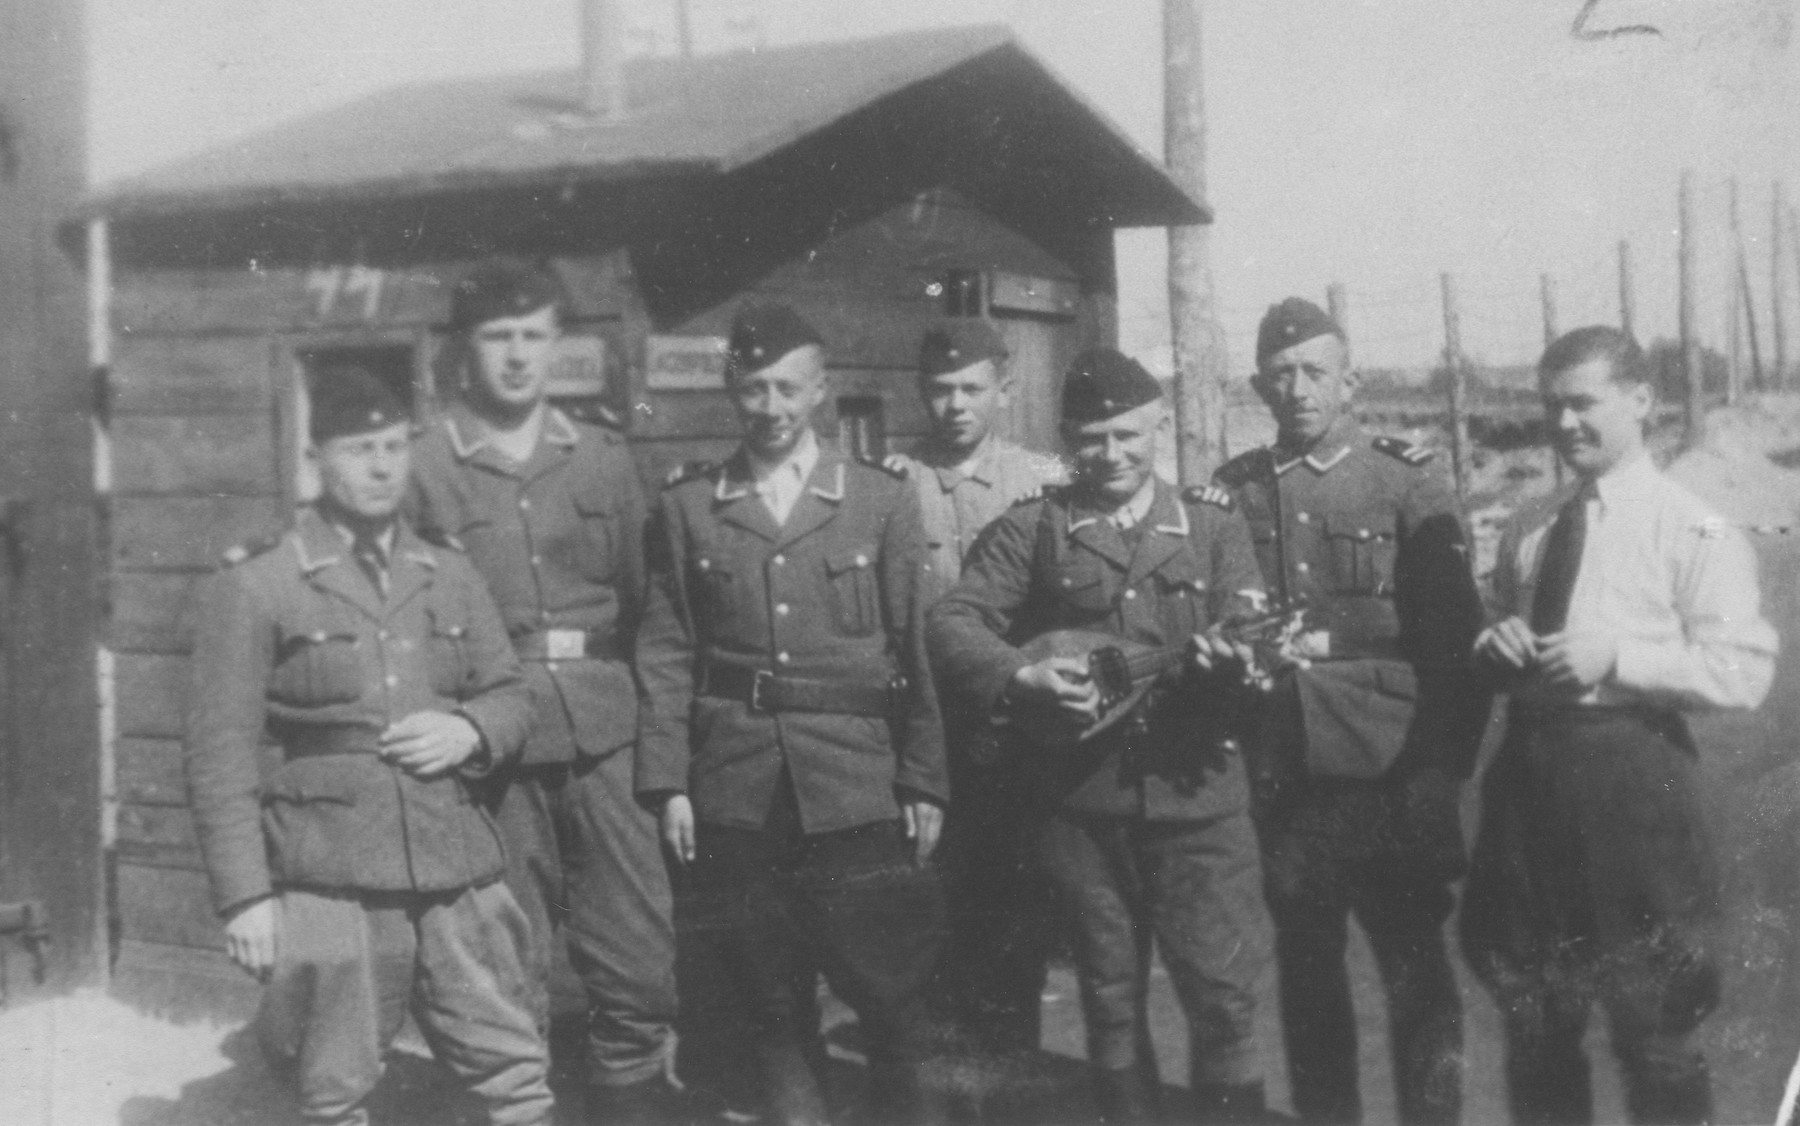 Group portrait of Trawniki-trained guards at Belzec killing center, 1942.